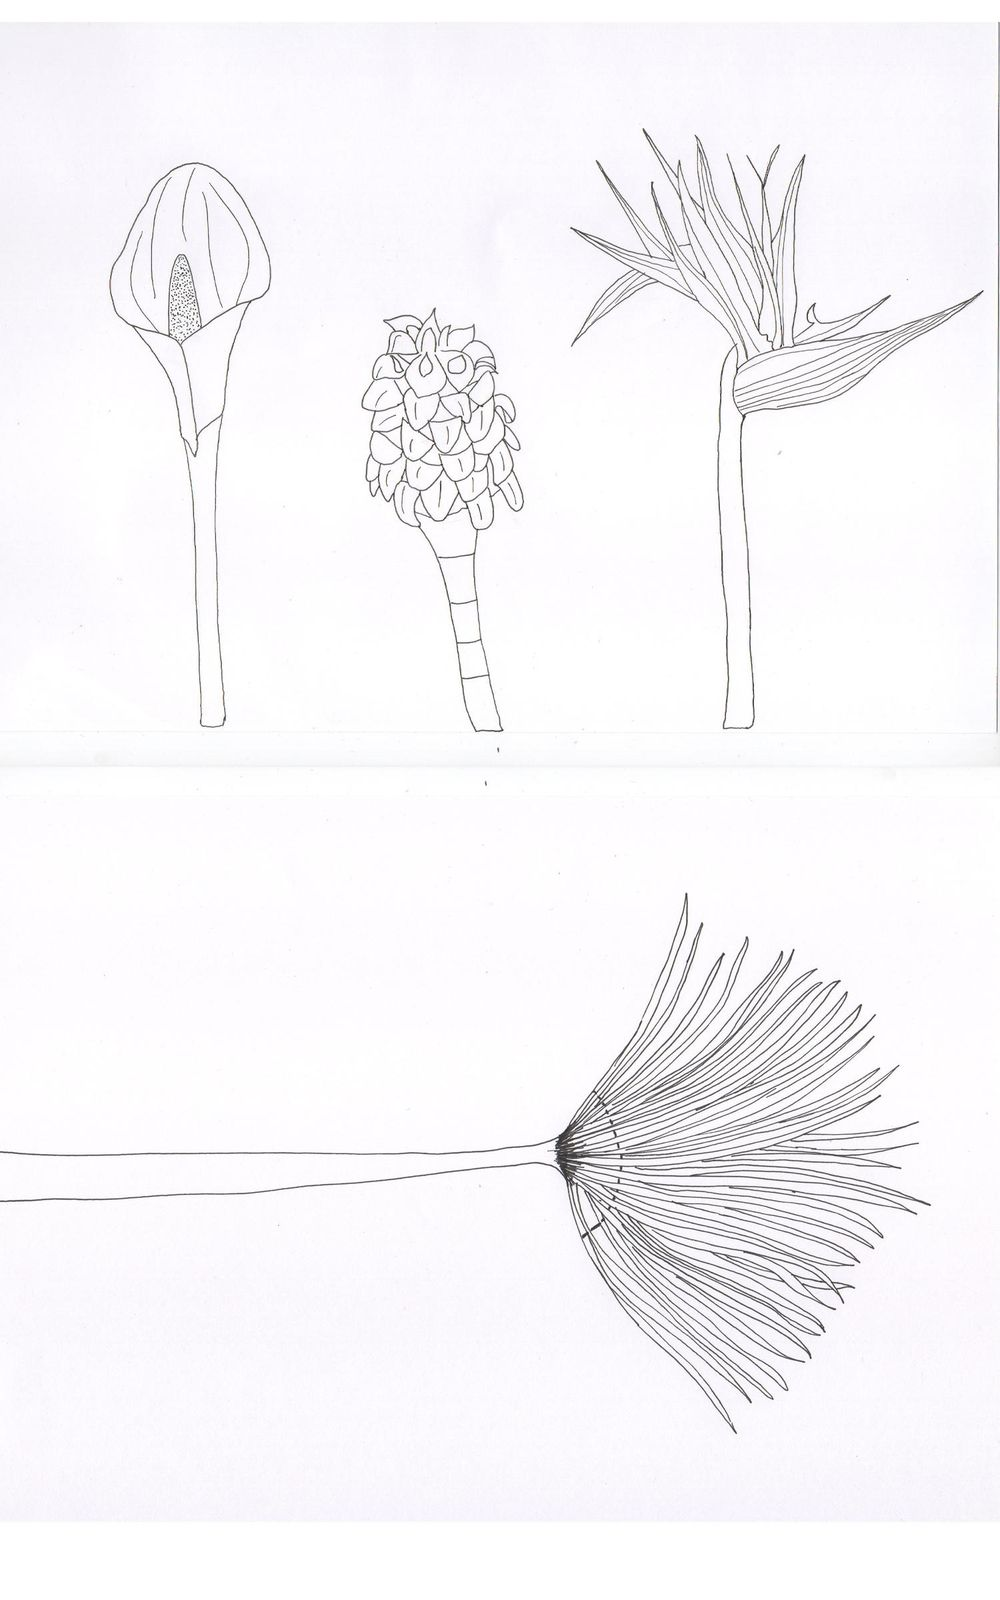 Workshop project: Desperately looking for my style! - image 11 - student project